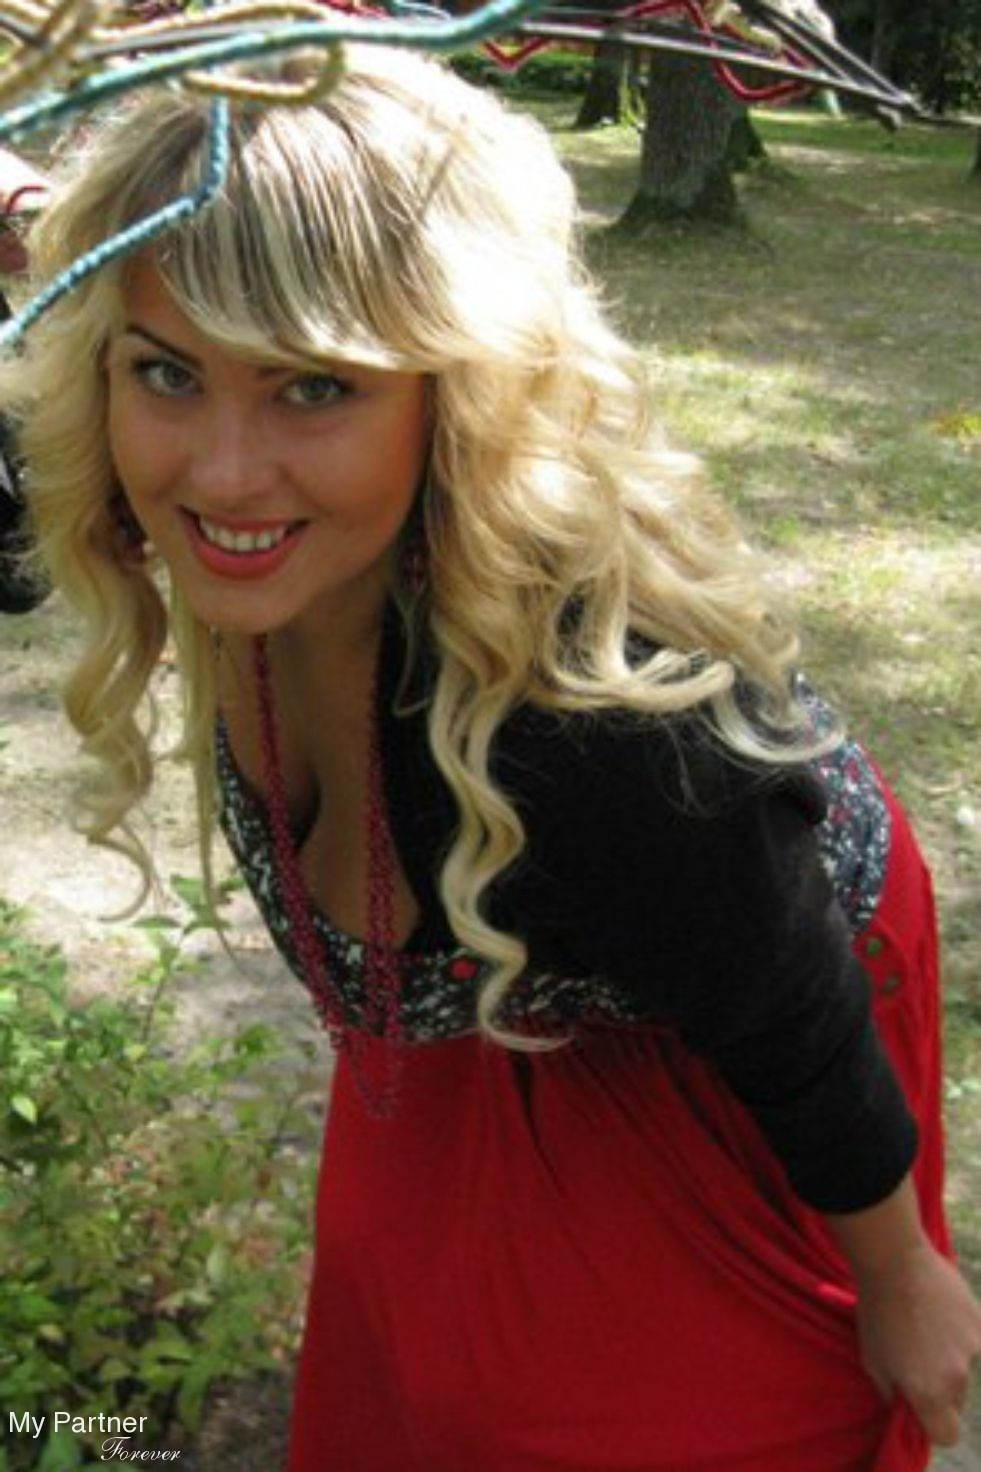 russia single catholic girls Meet more than 15,000 beautiful russian and ukraine brides who want to meet an american or european gentleman for live video-chat and much more russian beauties look as good as models.